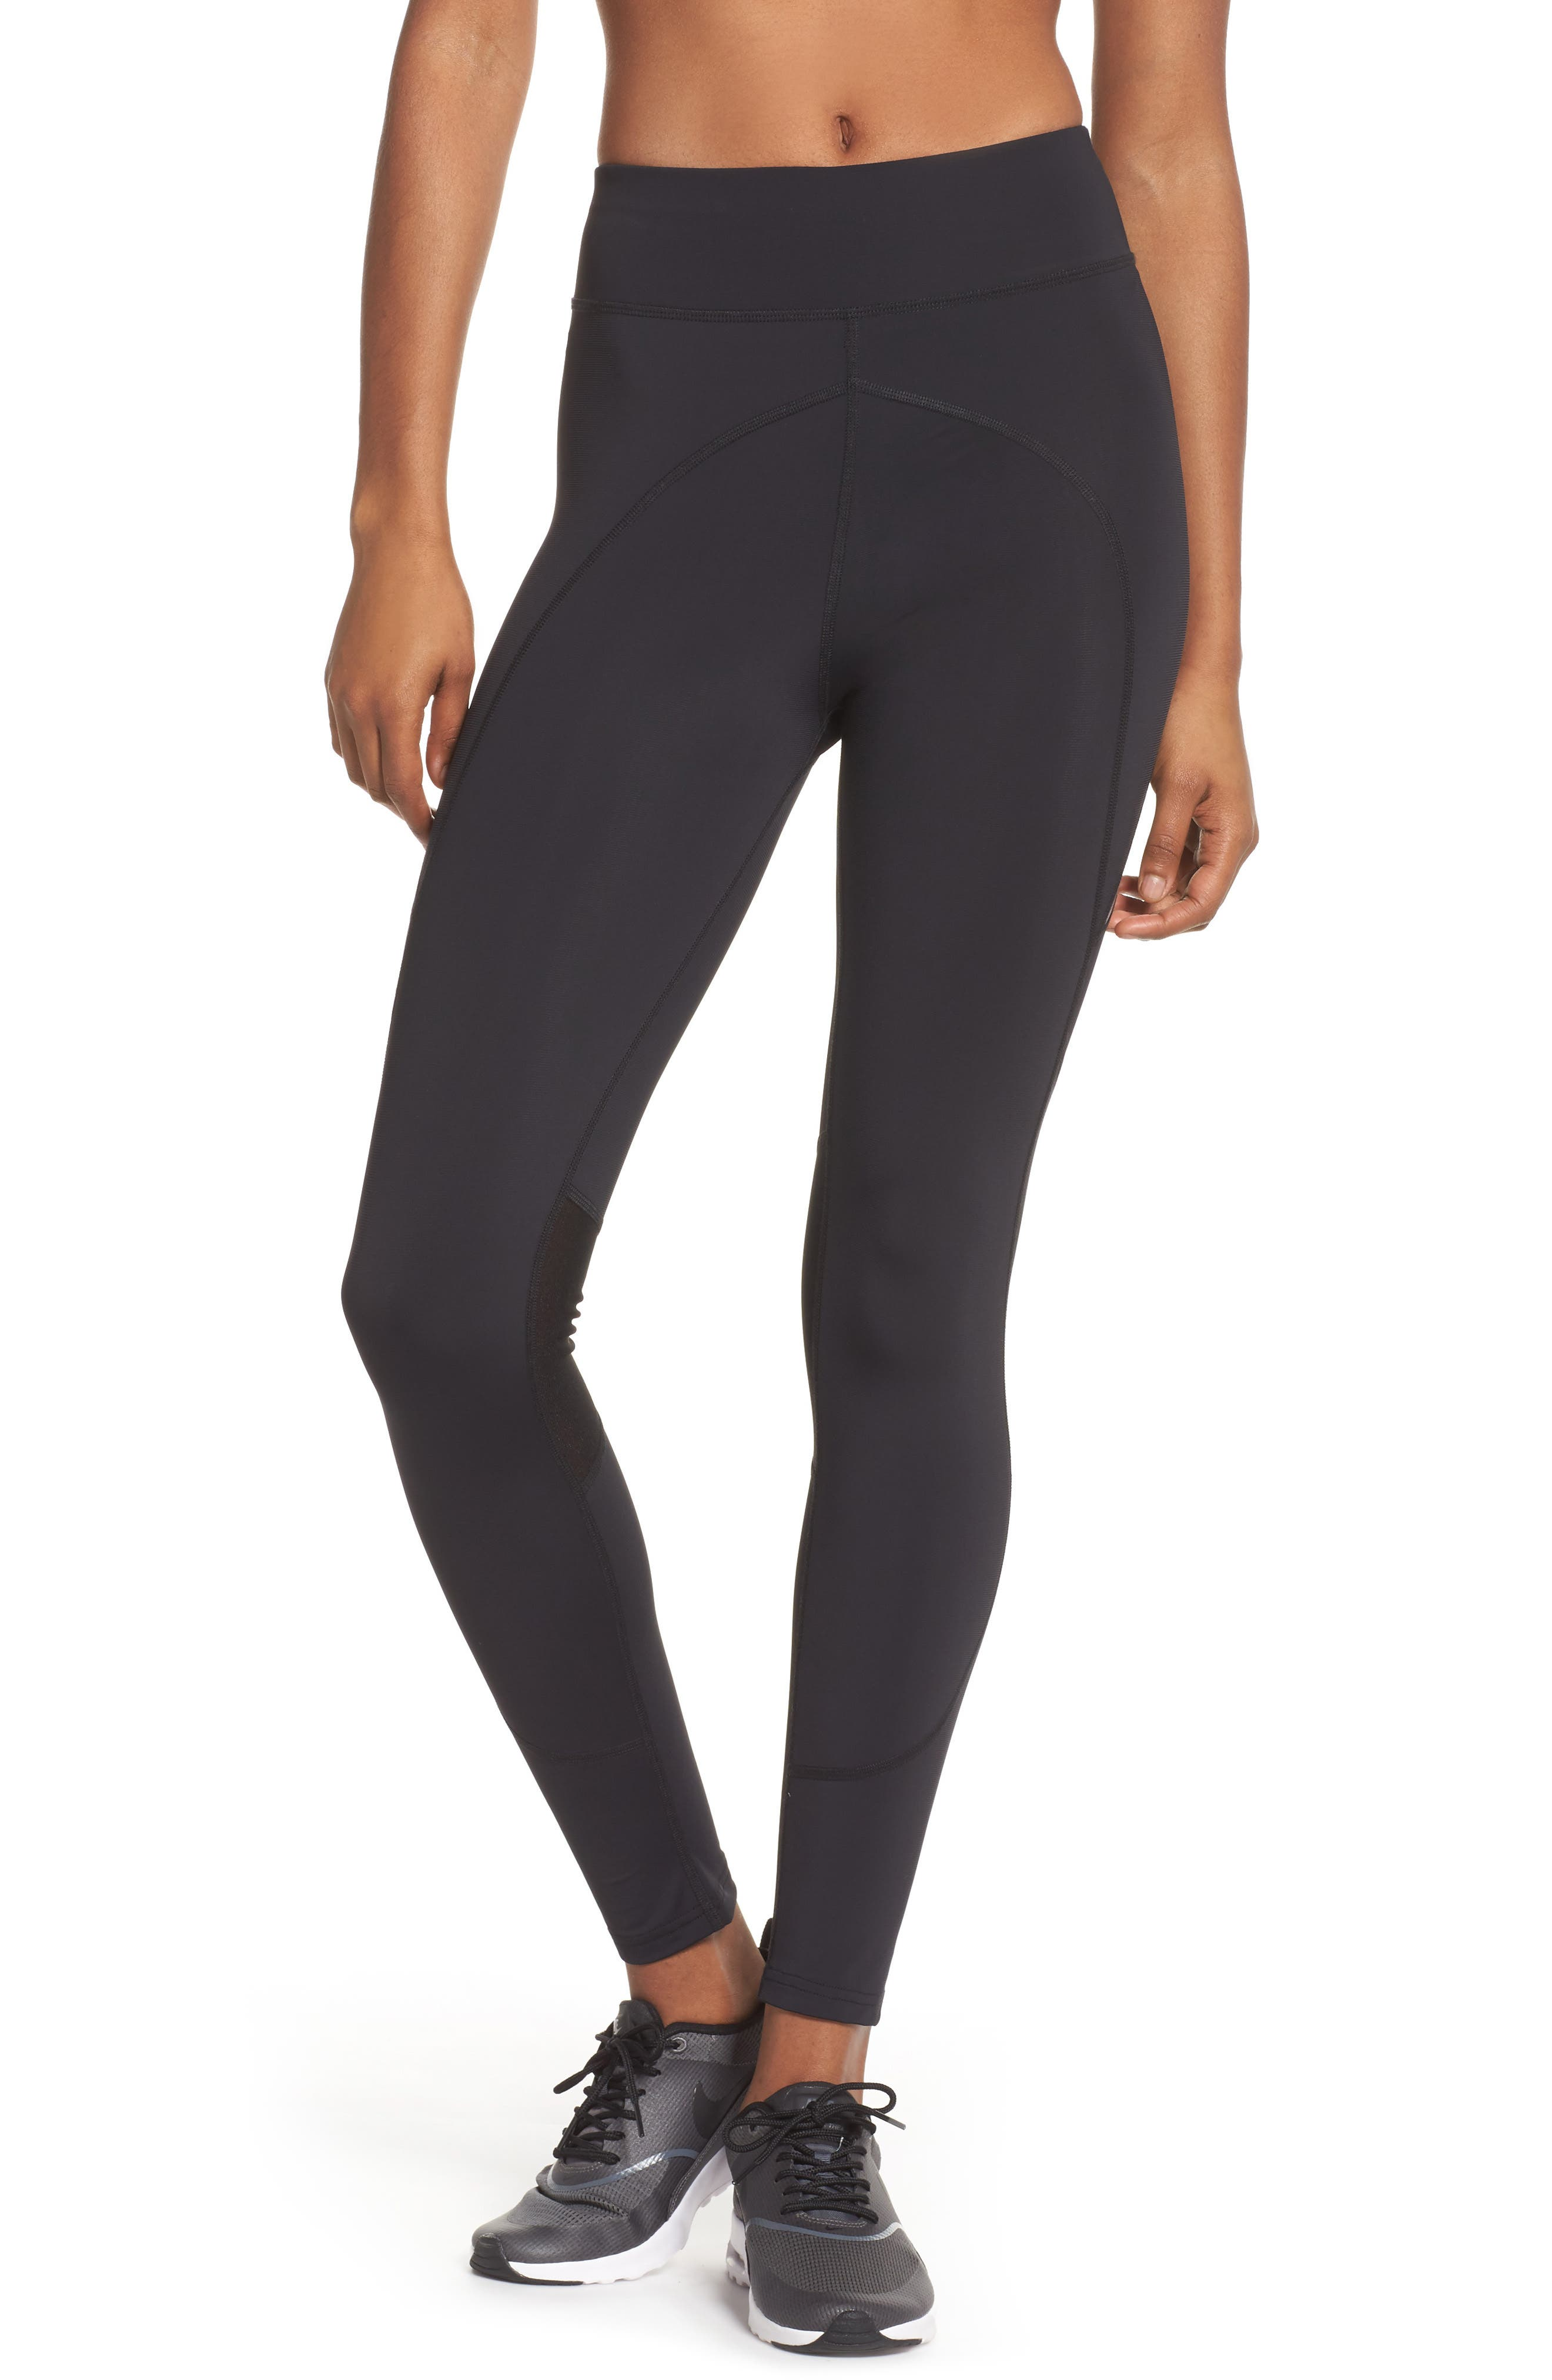 BoomBoom Athletica High Compression Sport Leggings,                             Main thumbnail 1, color,                             005